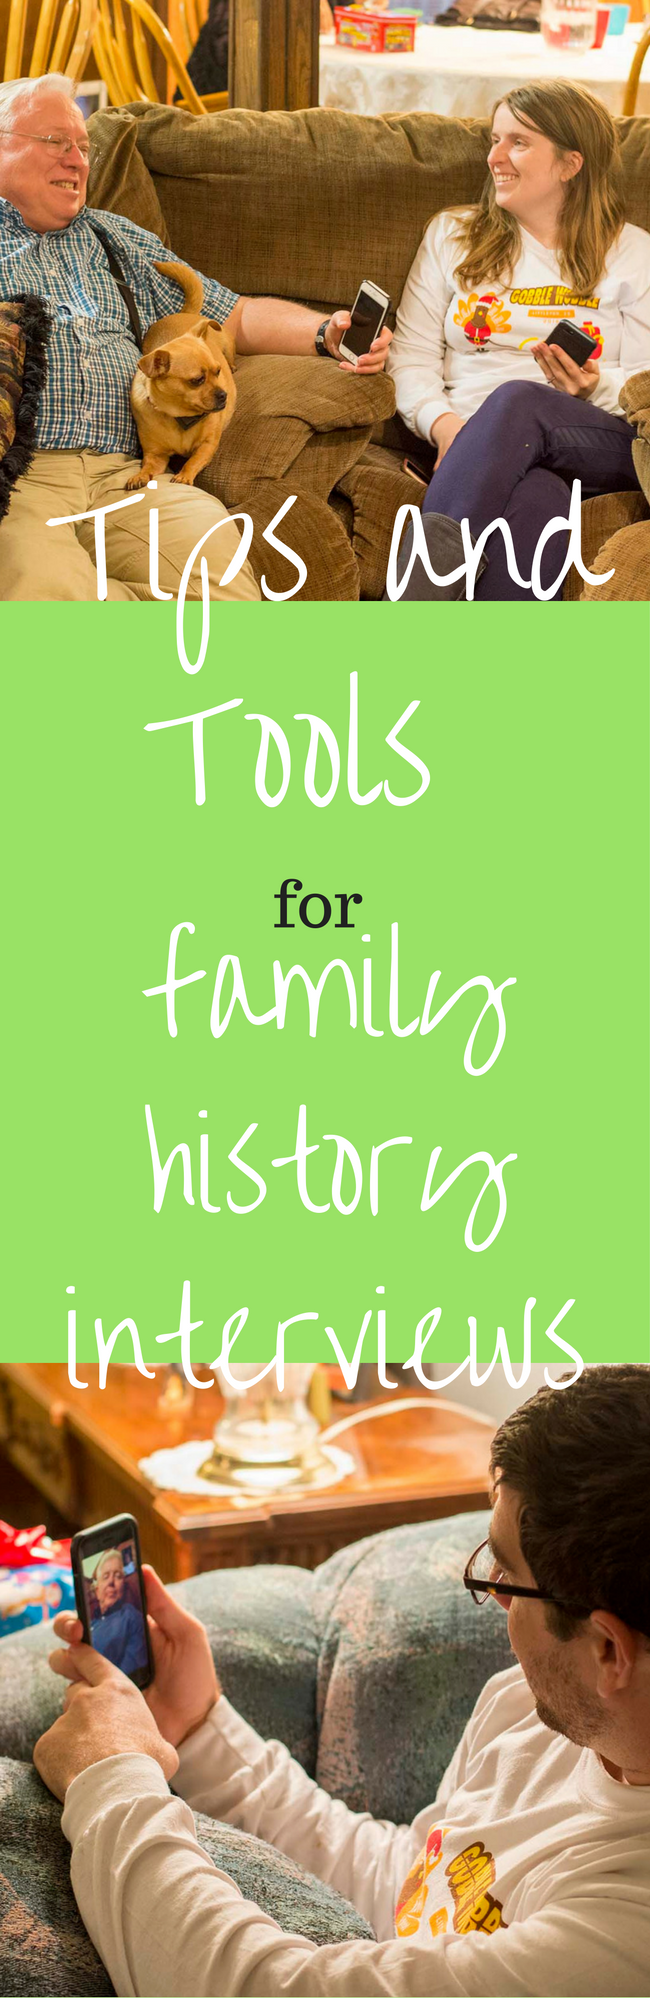 If you are looking for some family history ideas, read on! Organizing family history interviews with family members is a great way to preserve their Genealogy. It's a great project for adults and youth to participate in.